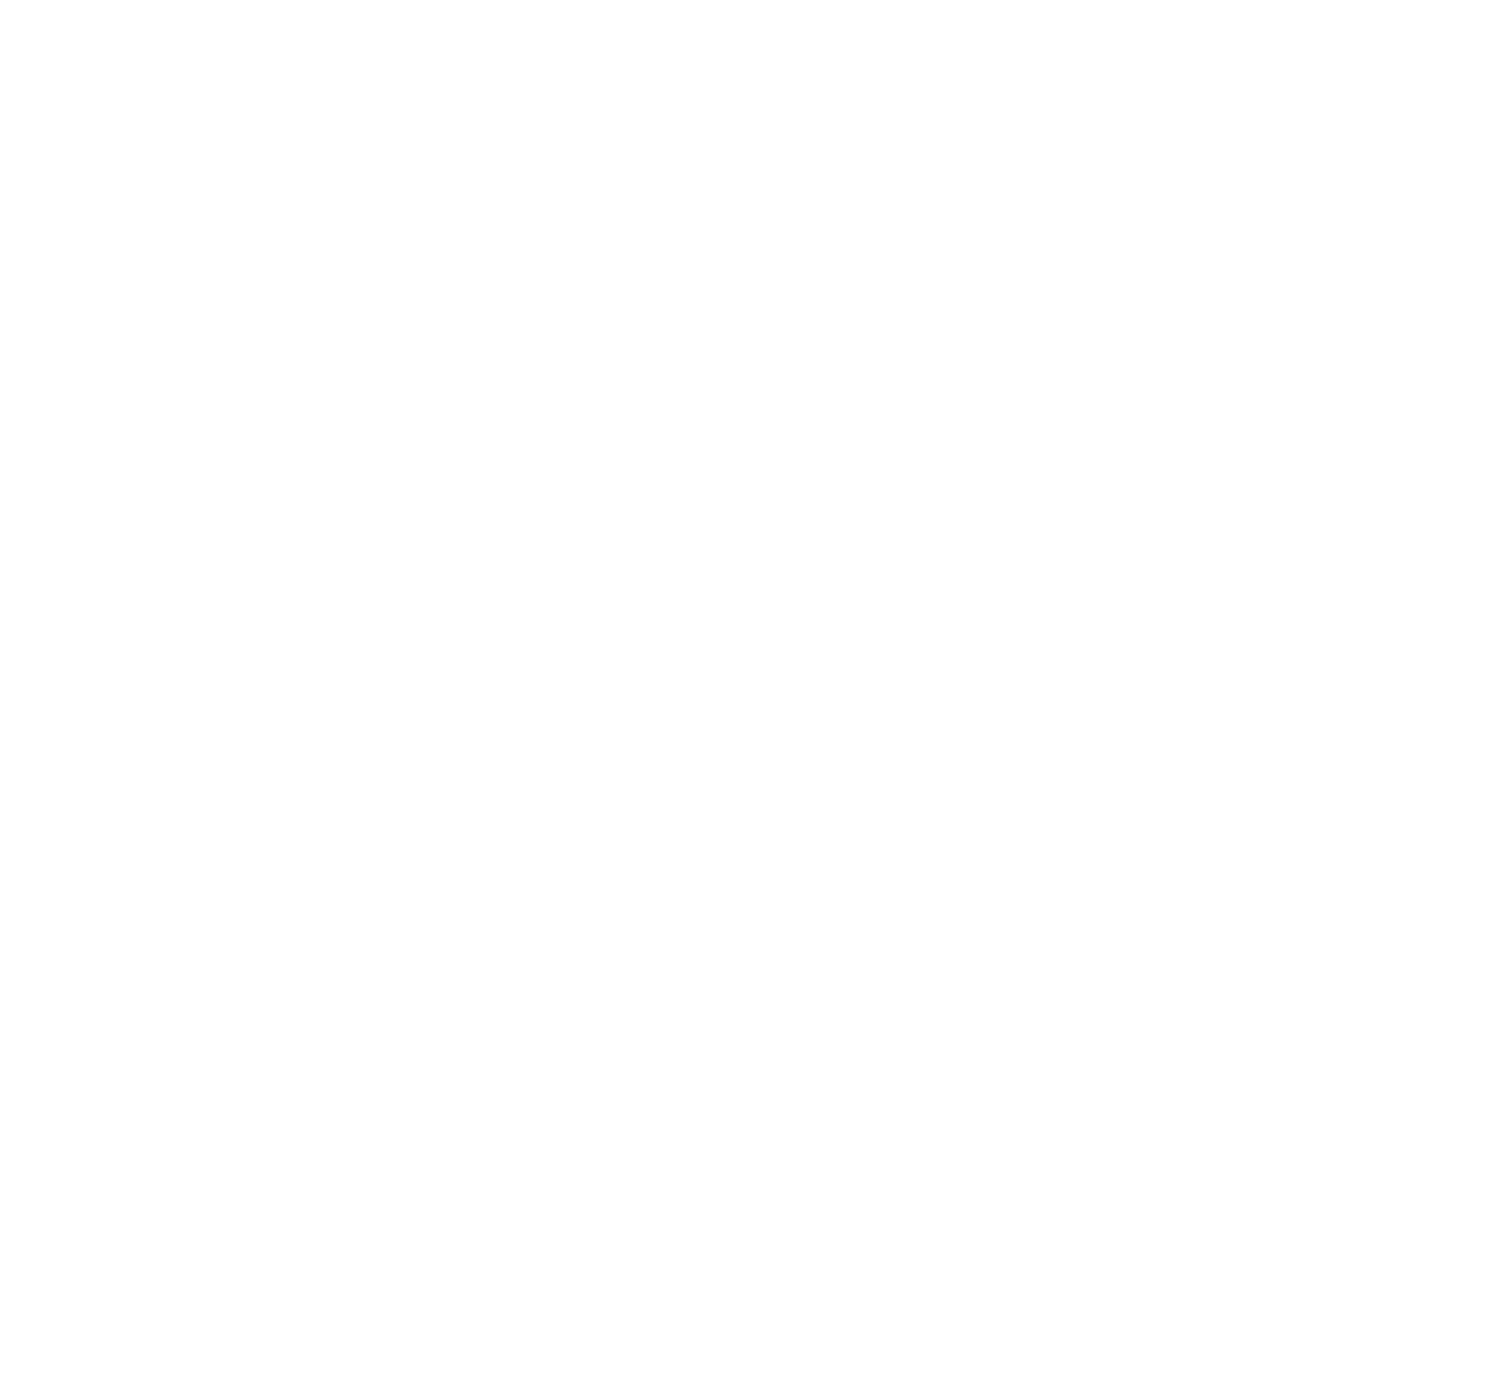 Zen & Tonic - Music Consulting